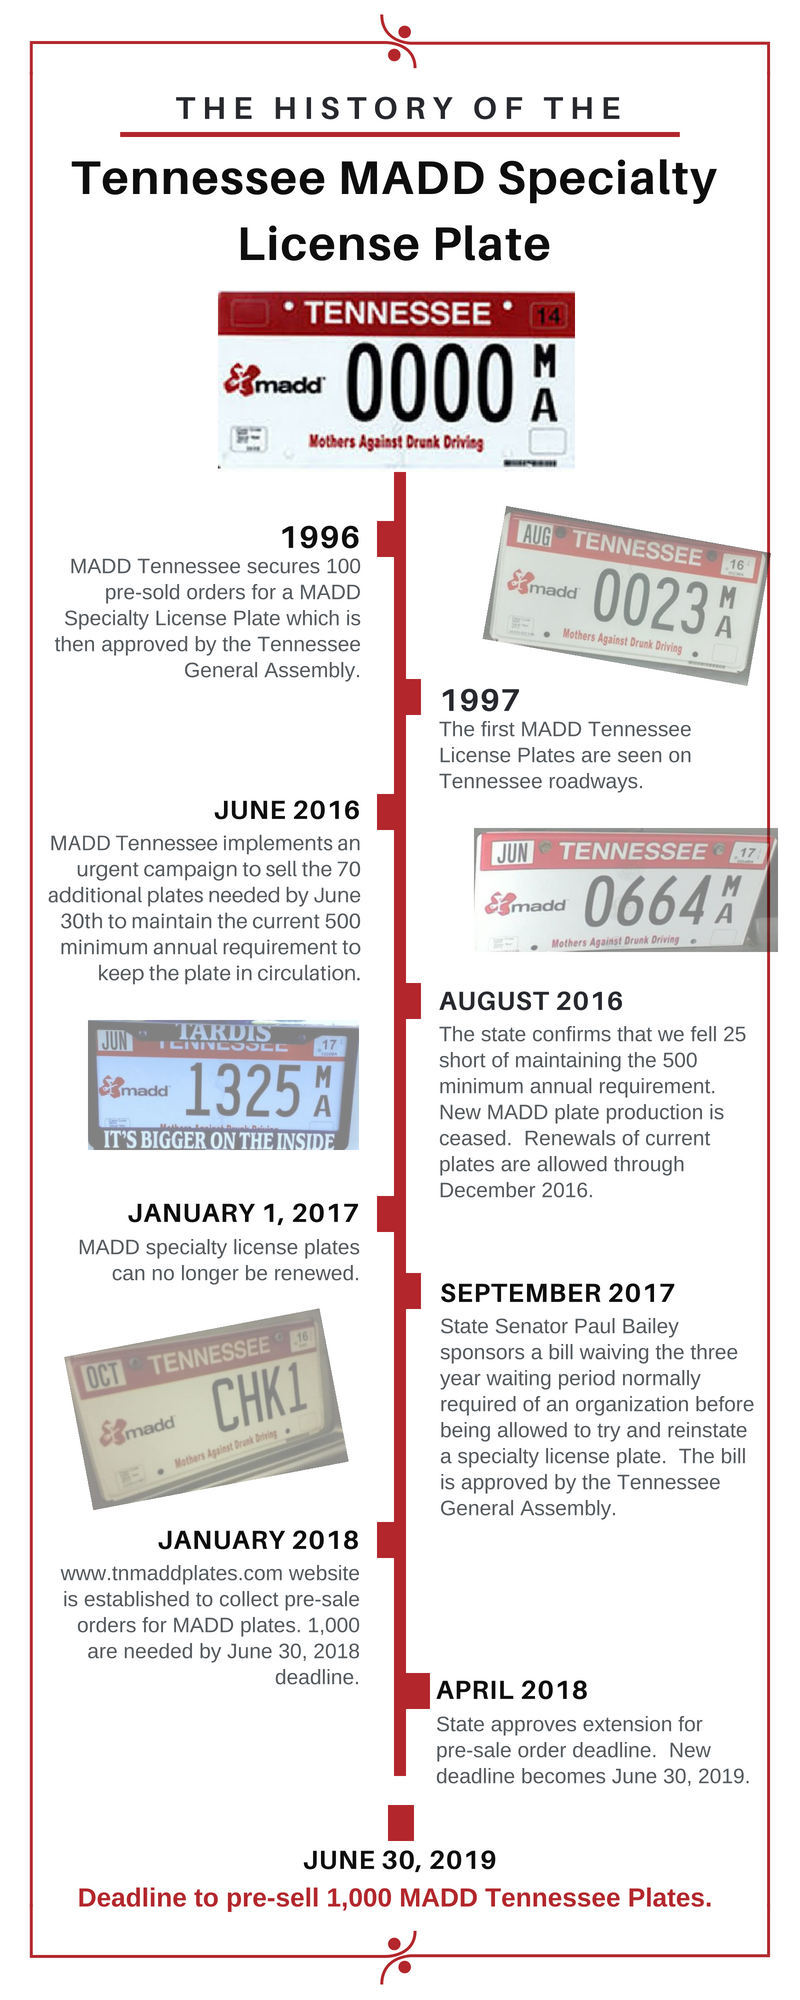 MADD Specialty License Plate History Timeline Infographic